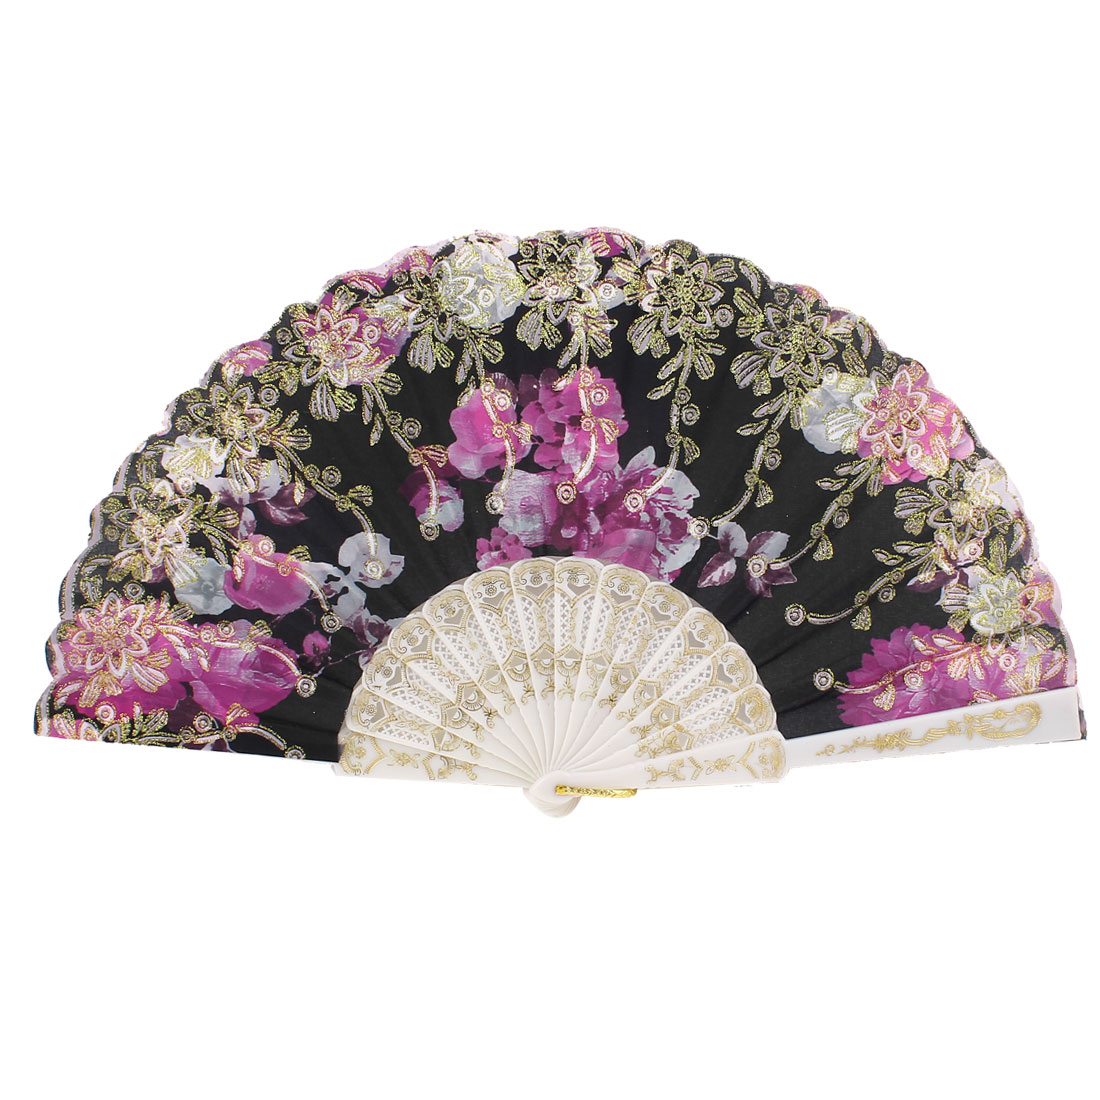 Floral Pattern Glitter Folding Dancing Hand Fan Wedding Party Gift Purple Black